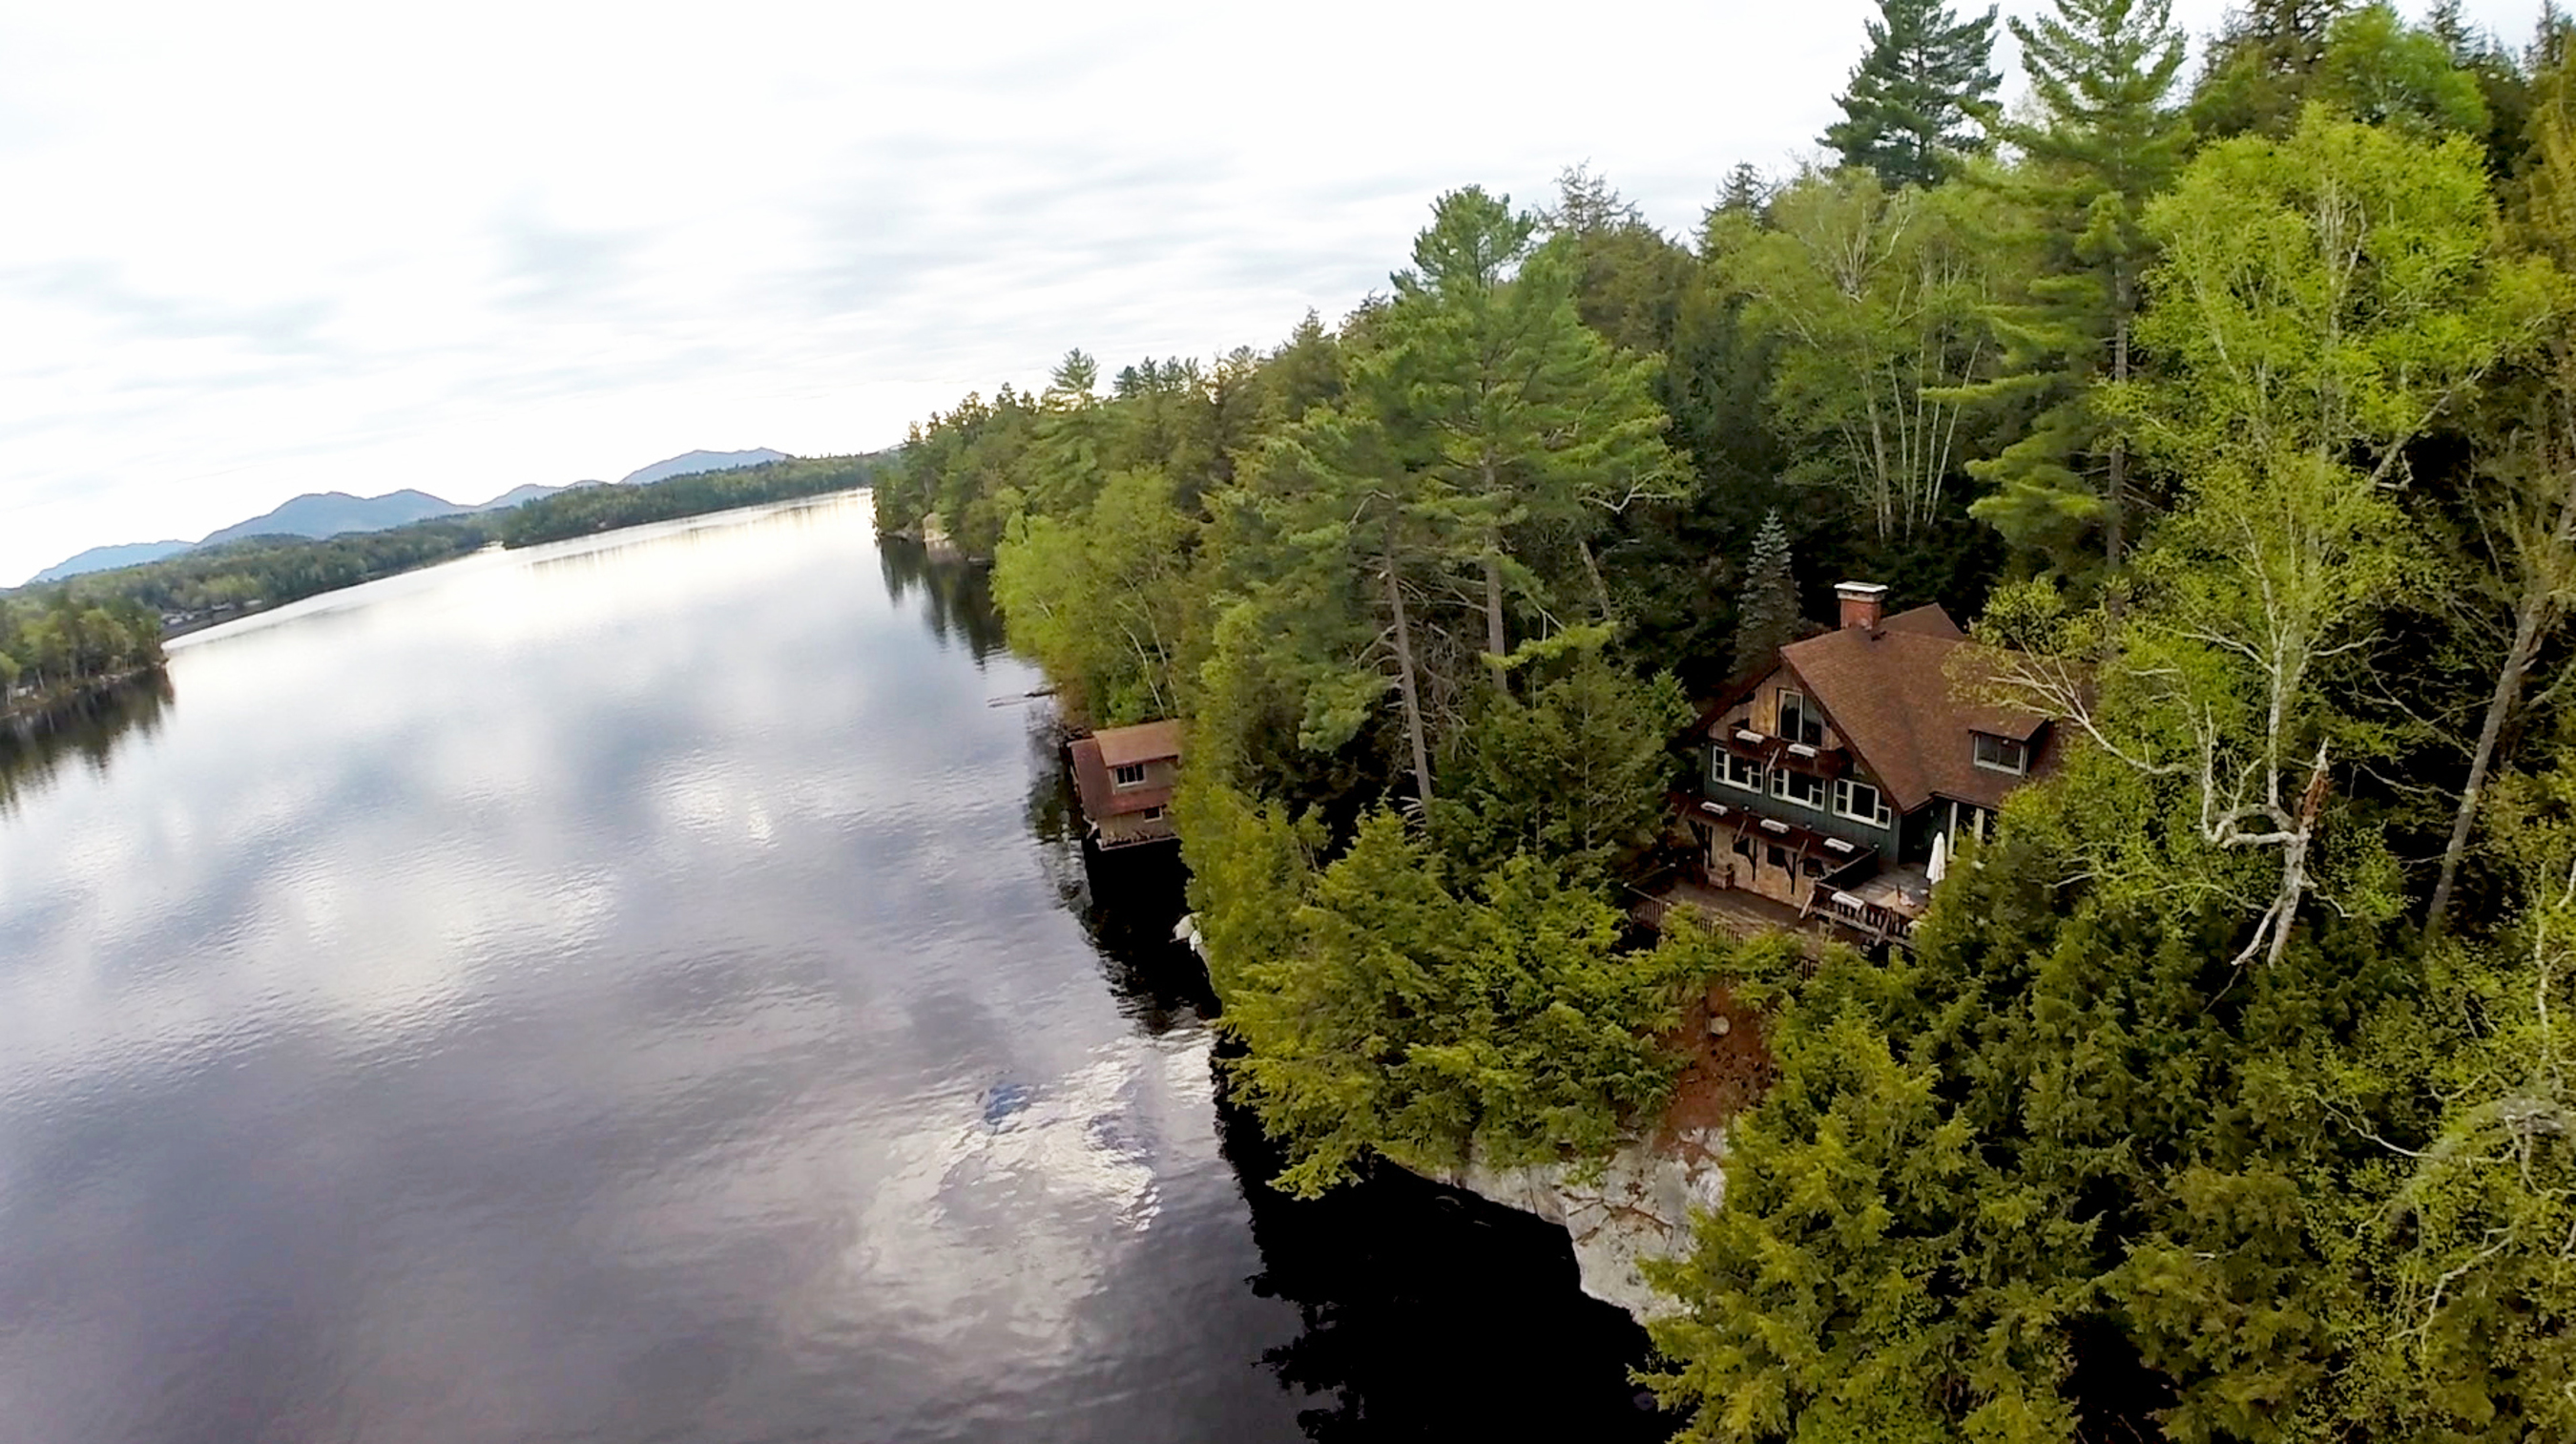 This rarely offered year-round Adirondack home on Ampersand Bay on the north end of Saranac Lake in an exclusive neighborhood of 12 waterfront homes sold last month through an auction marketing campaign.  It is one of three privately owned Adirondack waterfront properties recently sold by Williams & Williams Worldwide Real Estate Auction in cooperation with Margie Philo owner of Adirondack Premier Properties Inc. (PRNewsFoto/Williams & Williams)